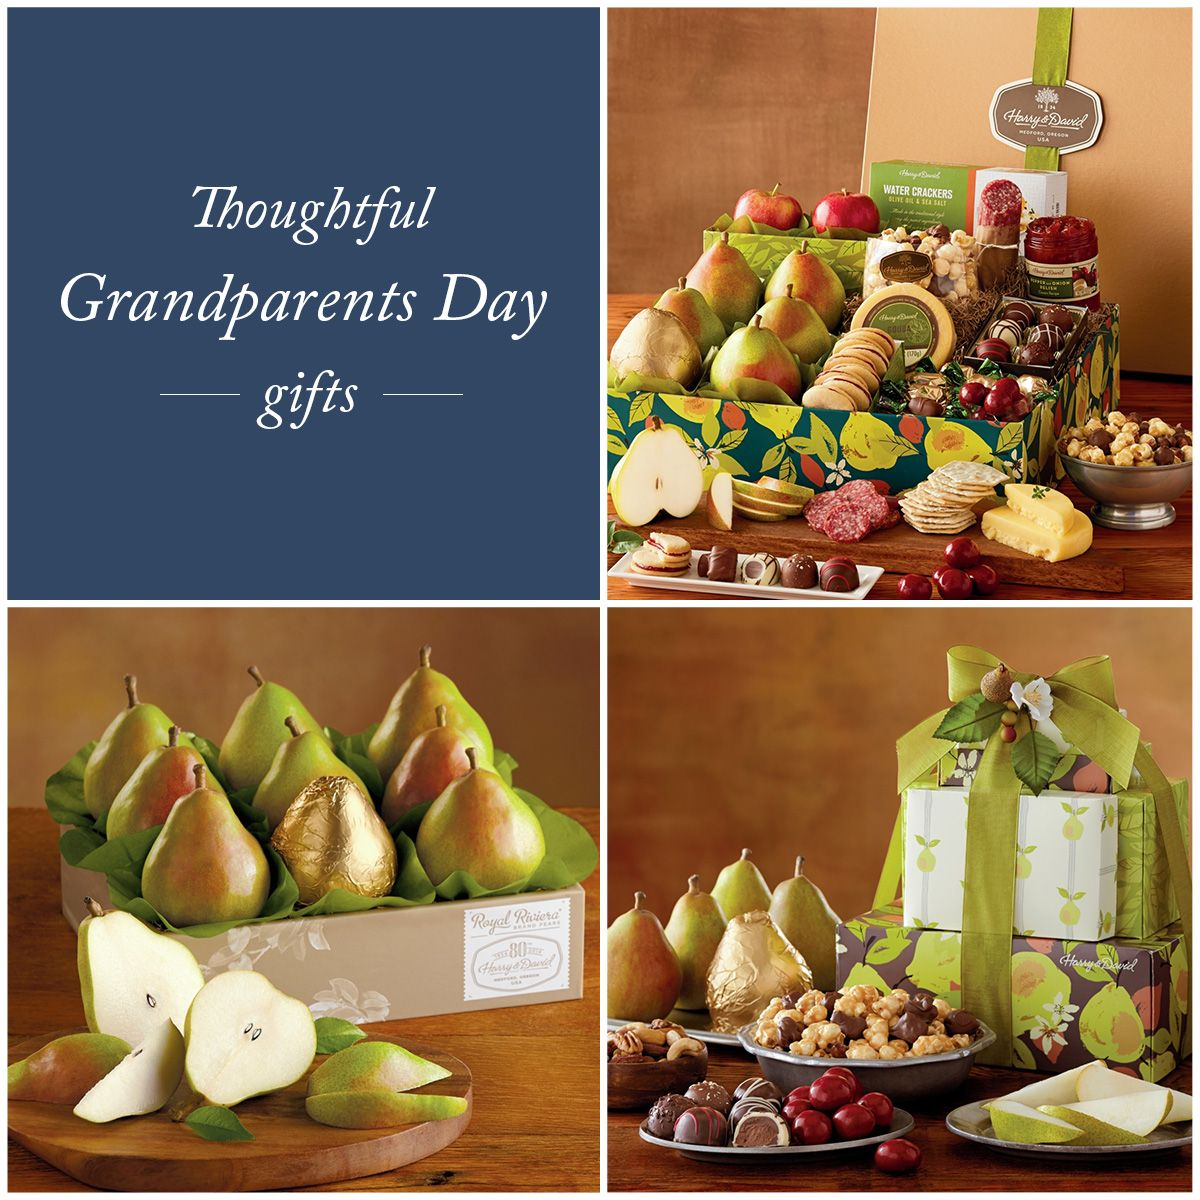 It's time to thank your wonderful grandparents for all that they do with a gourmet gift basket that they'll appreciate! Celebrate Grandparents Day on September 13th with us.